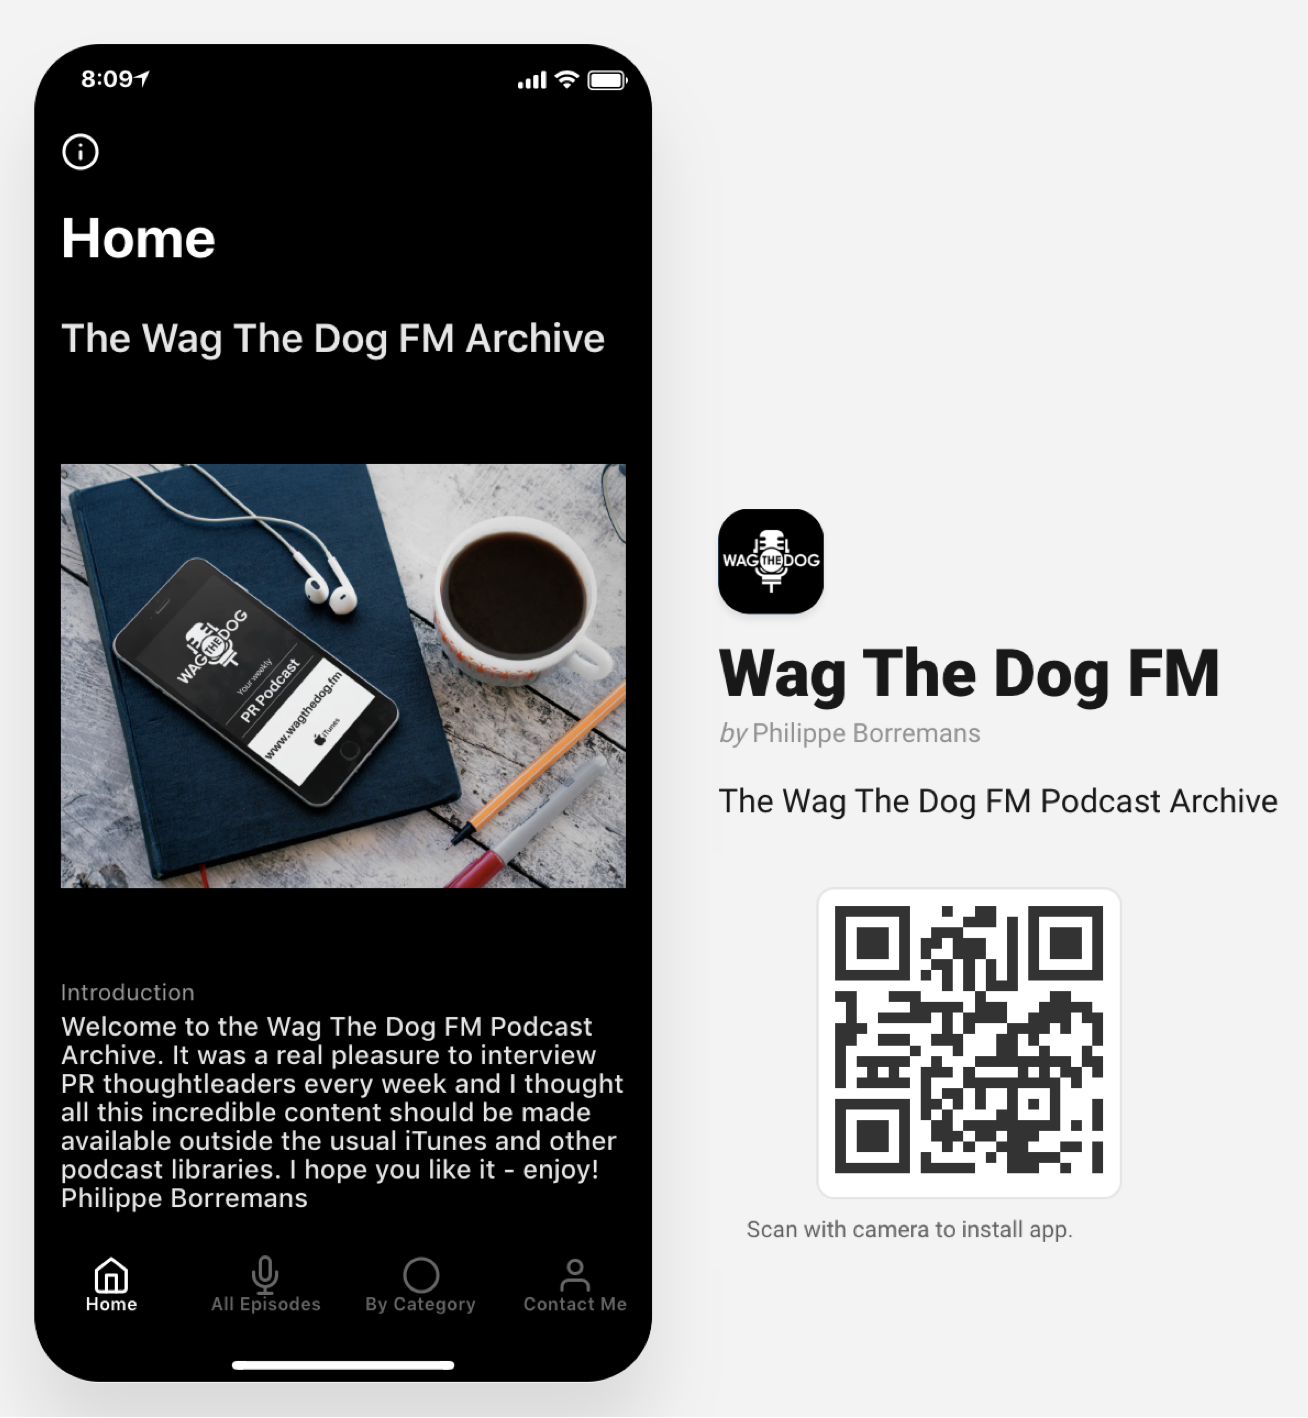 Scan the QR code with your mobile phone or go to  https://wagthedogfm.glideapp.io/